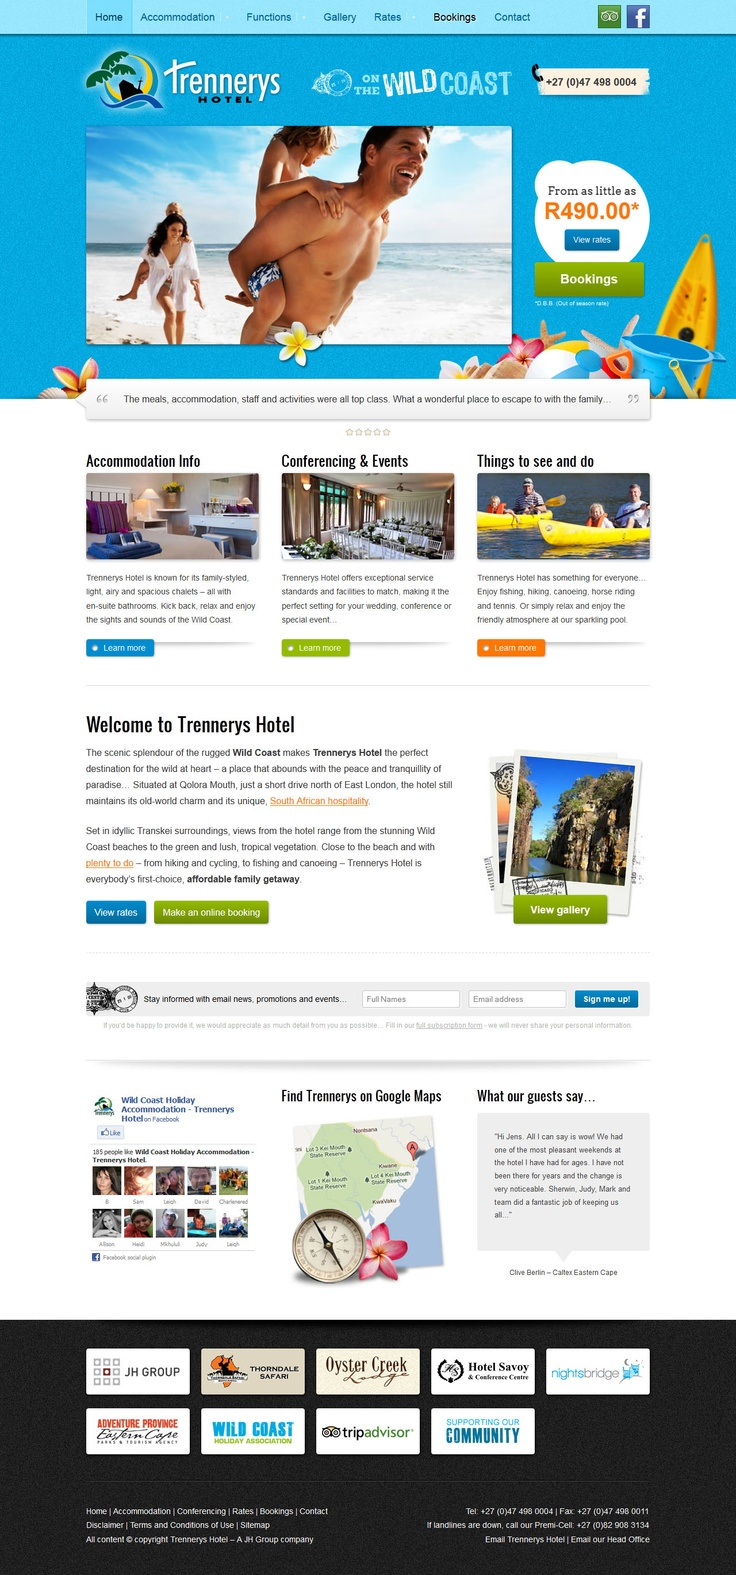 Website design for Trennerys Hotel on the Wild Coast.